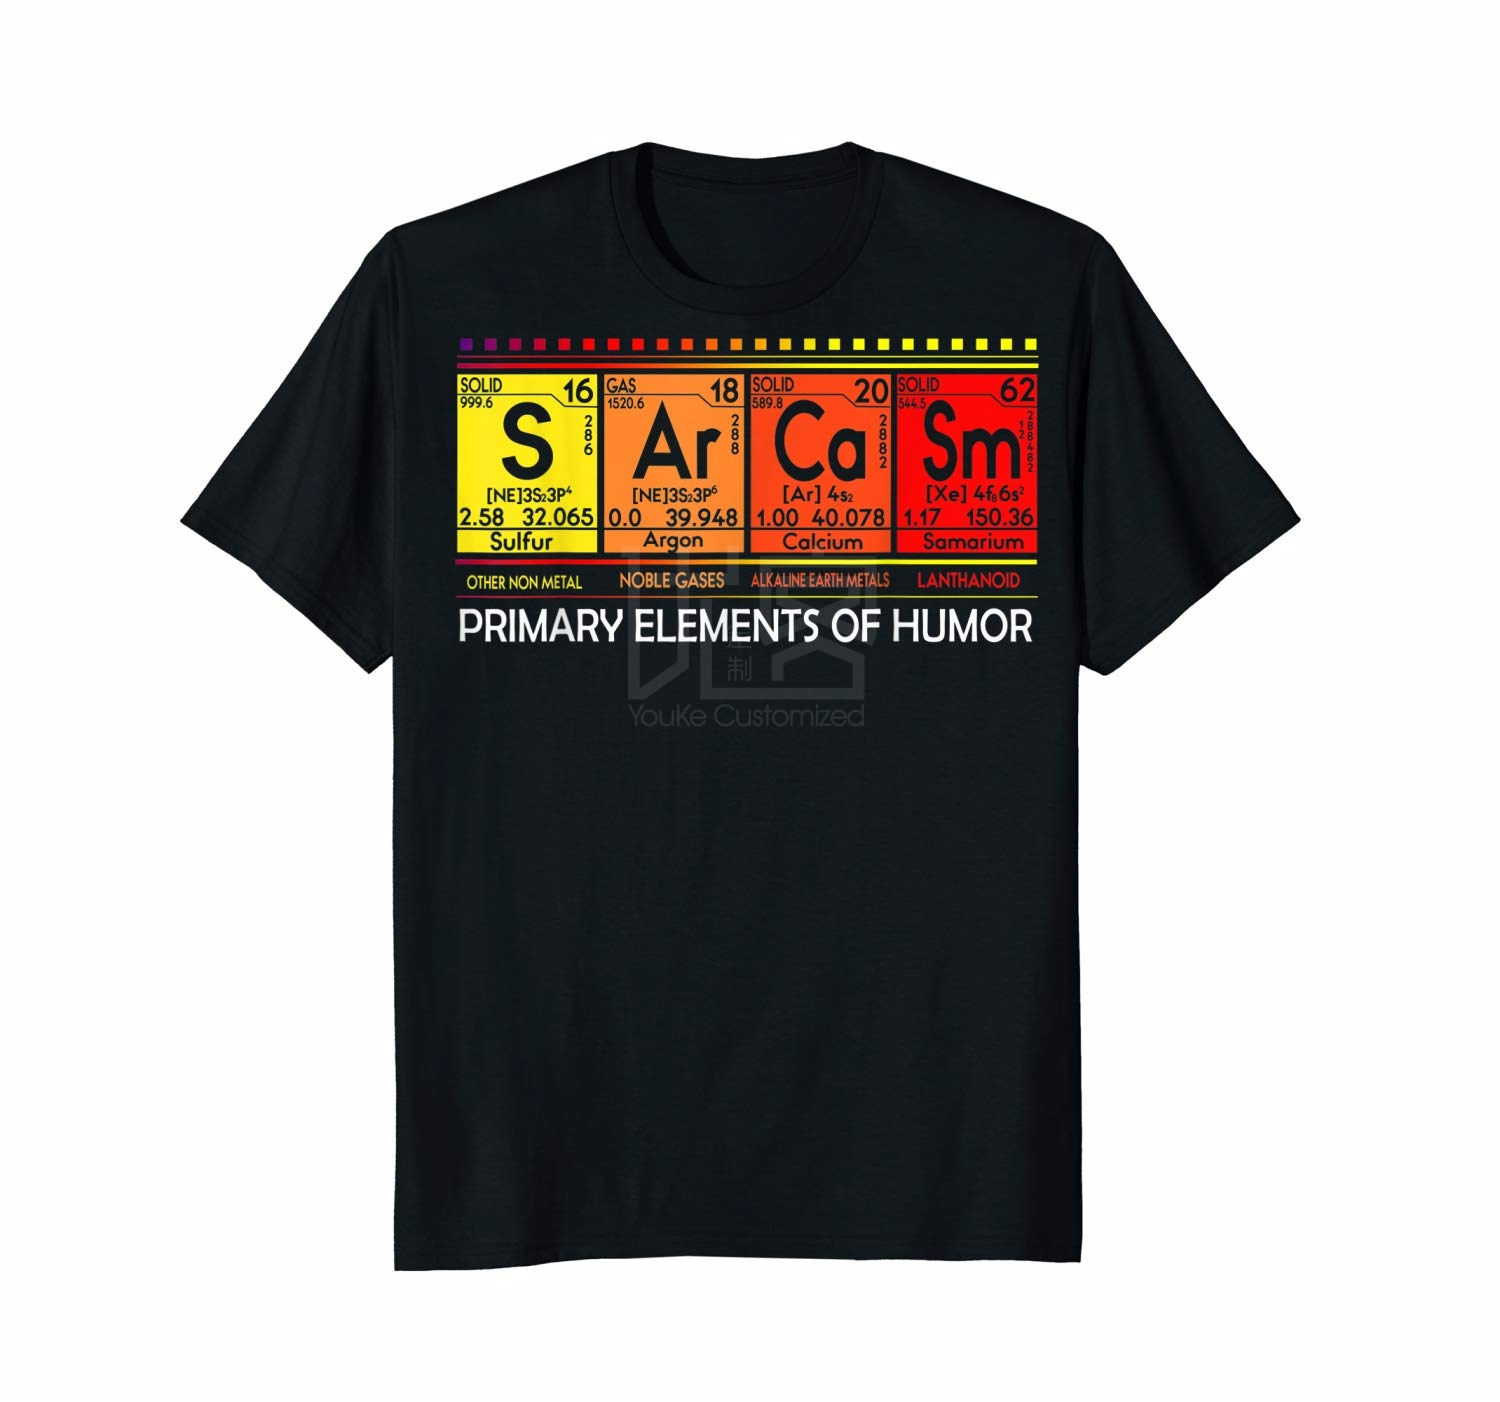 Cool Gift Sarcasm Primary Elements Of Humor S <font><b>Ar</b></font> Ca Sm Science Women Long Sleeve Funny <font><b>Shirt</b></font> Style Natural image